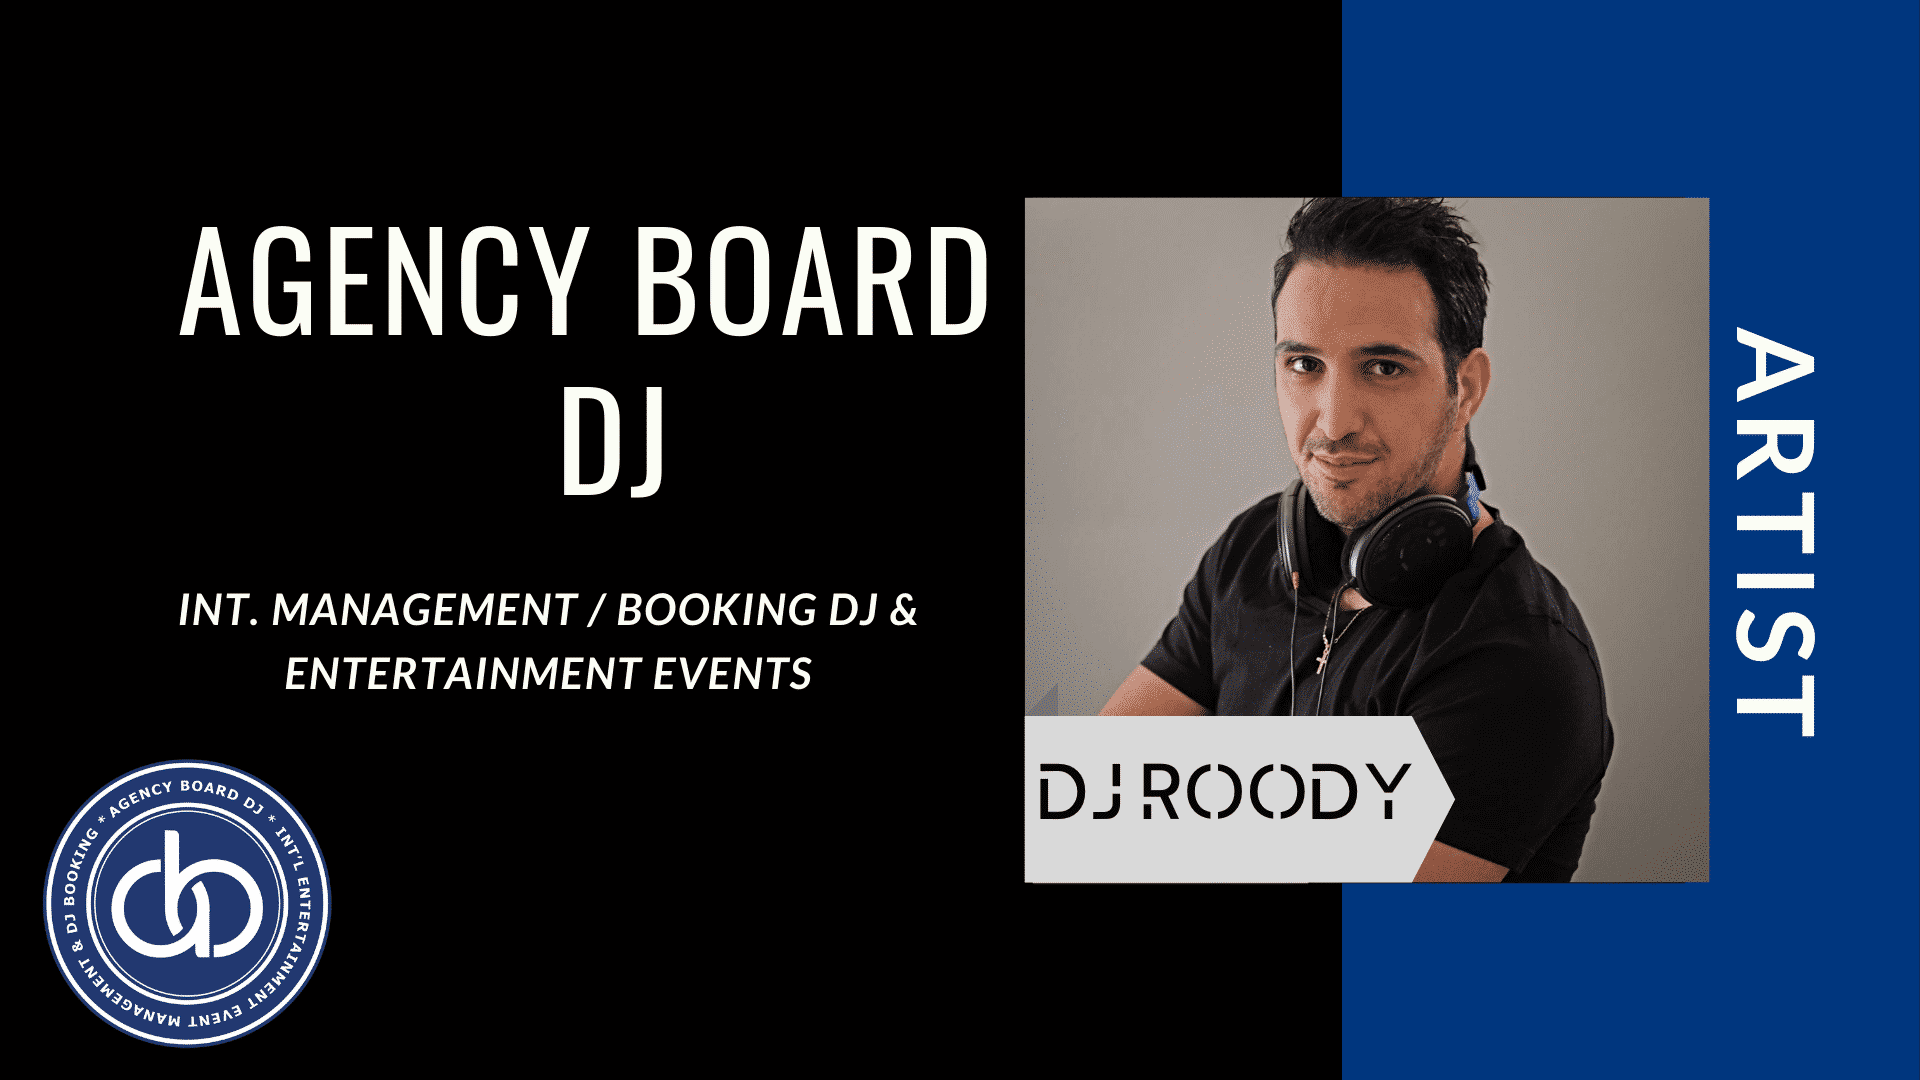 Dj-Roody,Artist, DJ Booking Agency